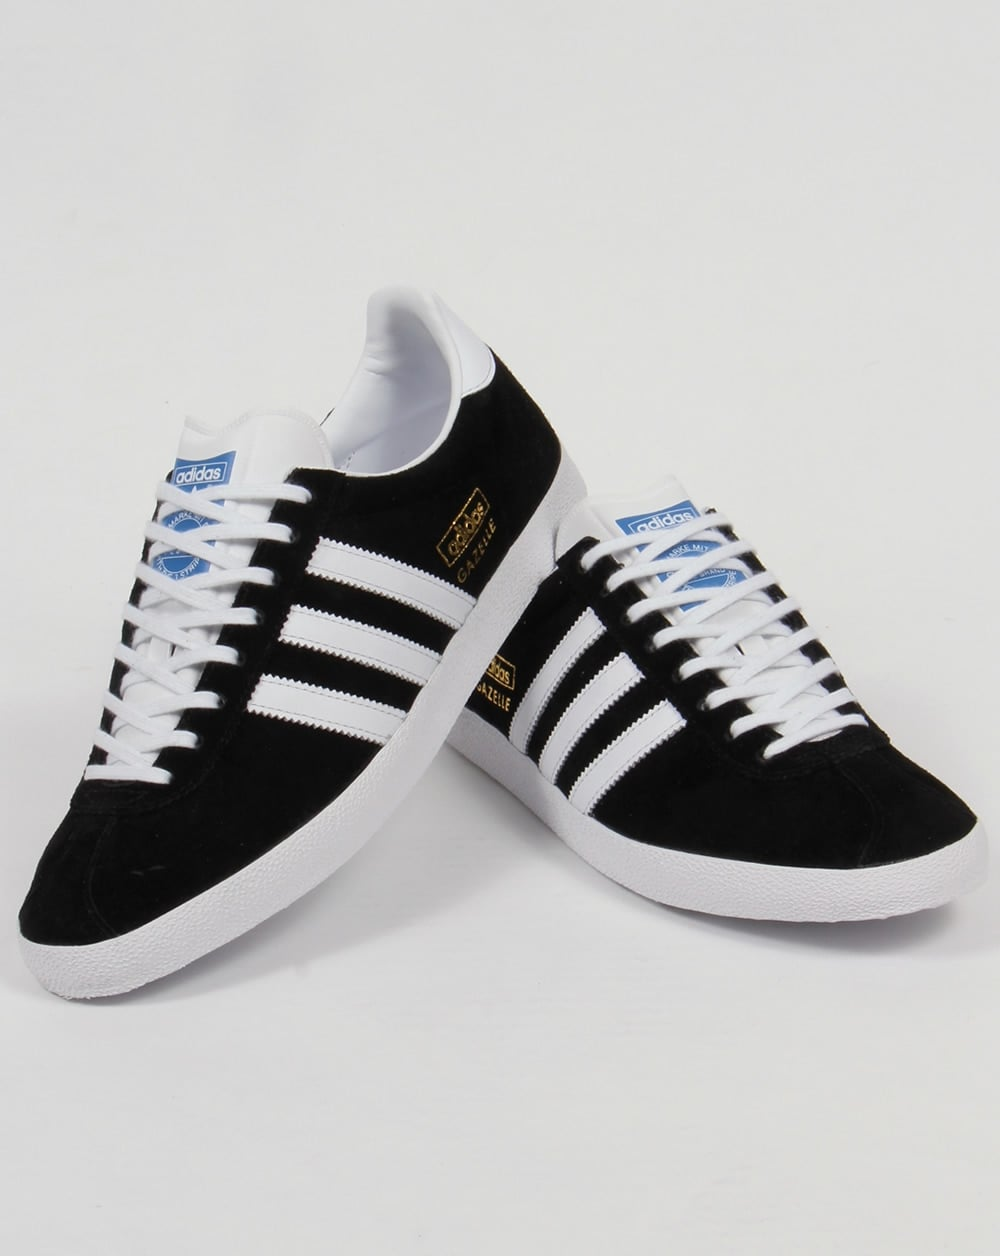 620a200ee31 cheap adidas gazelle og trainers black white 8d13e 87cbe